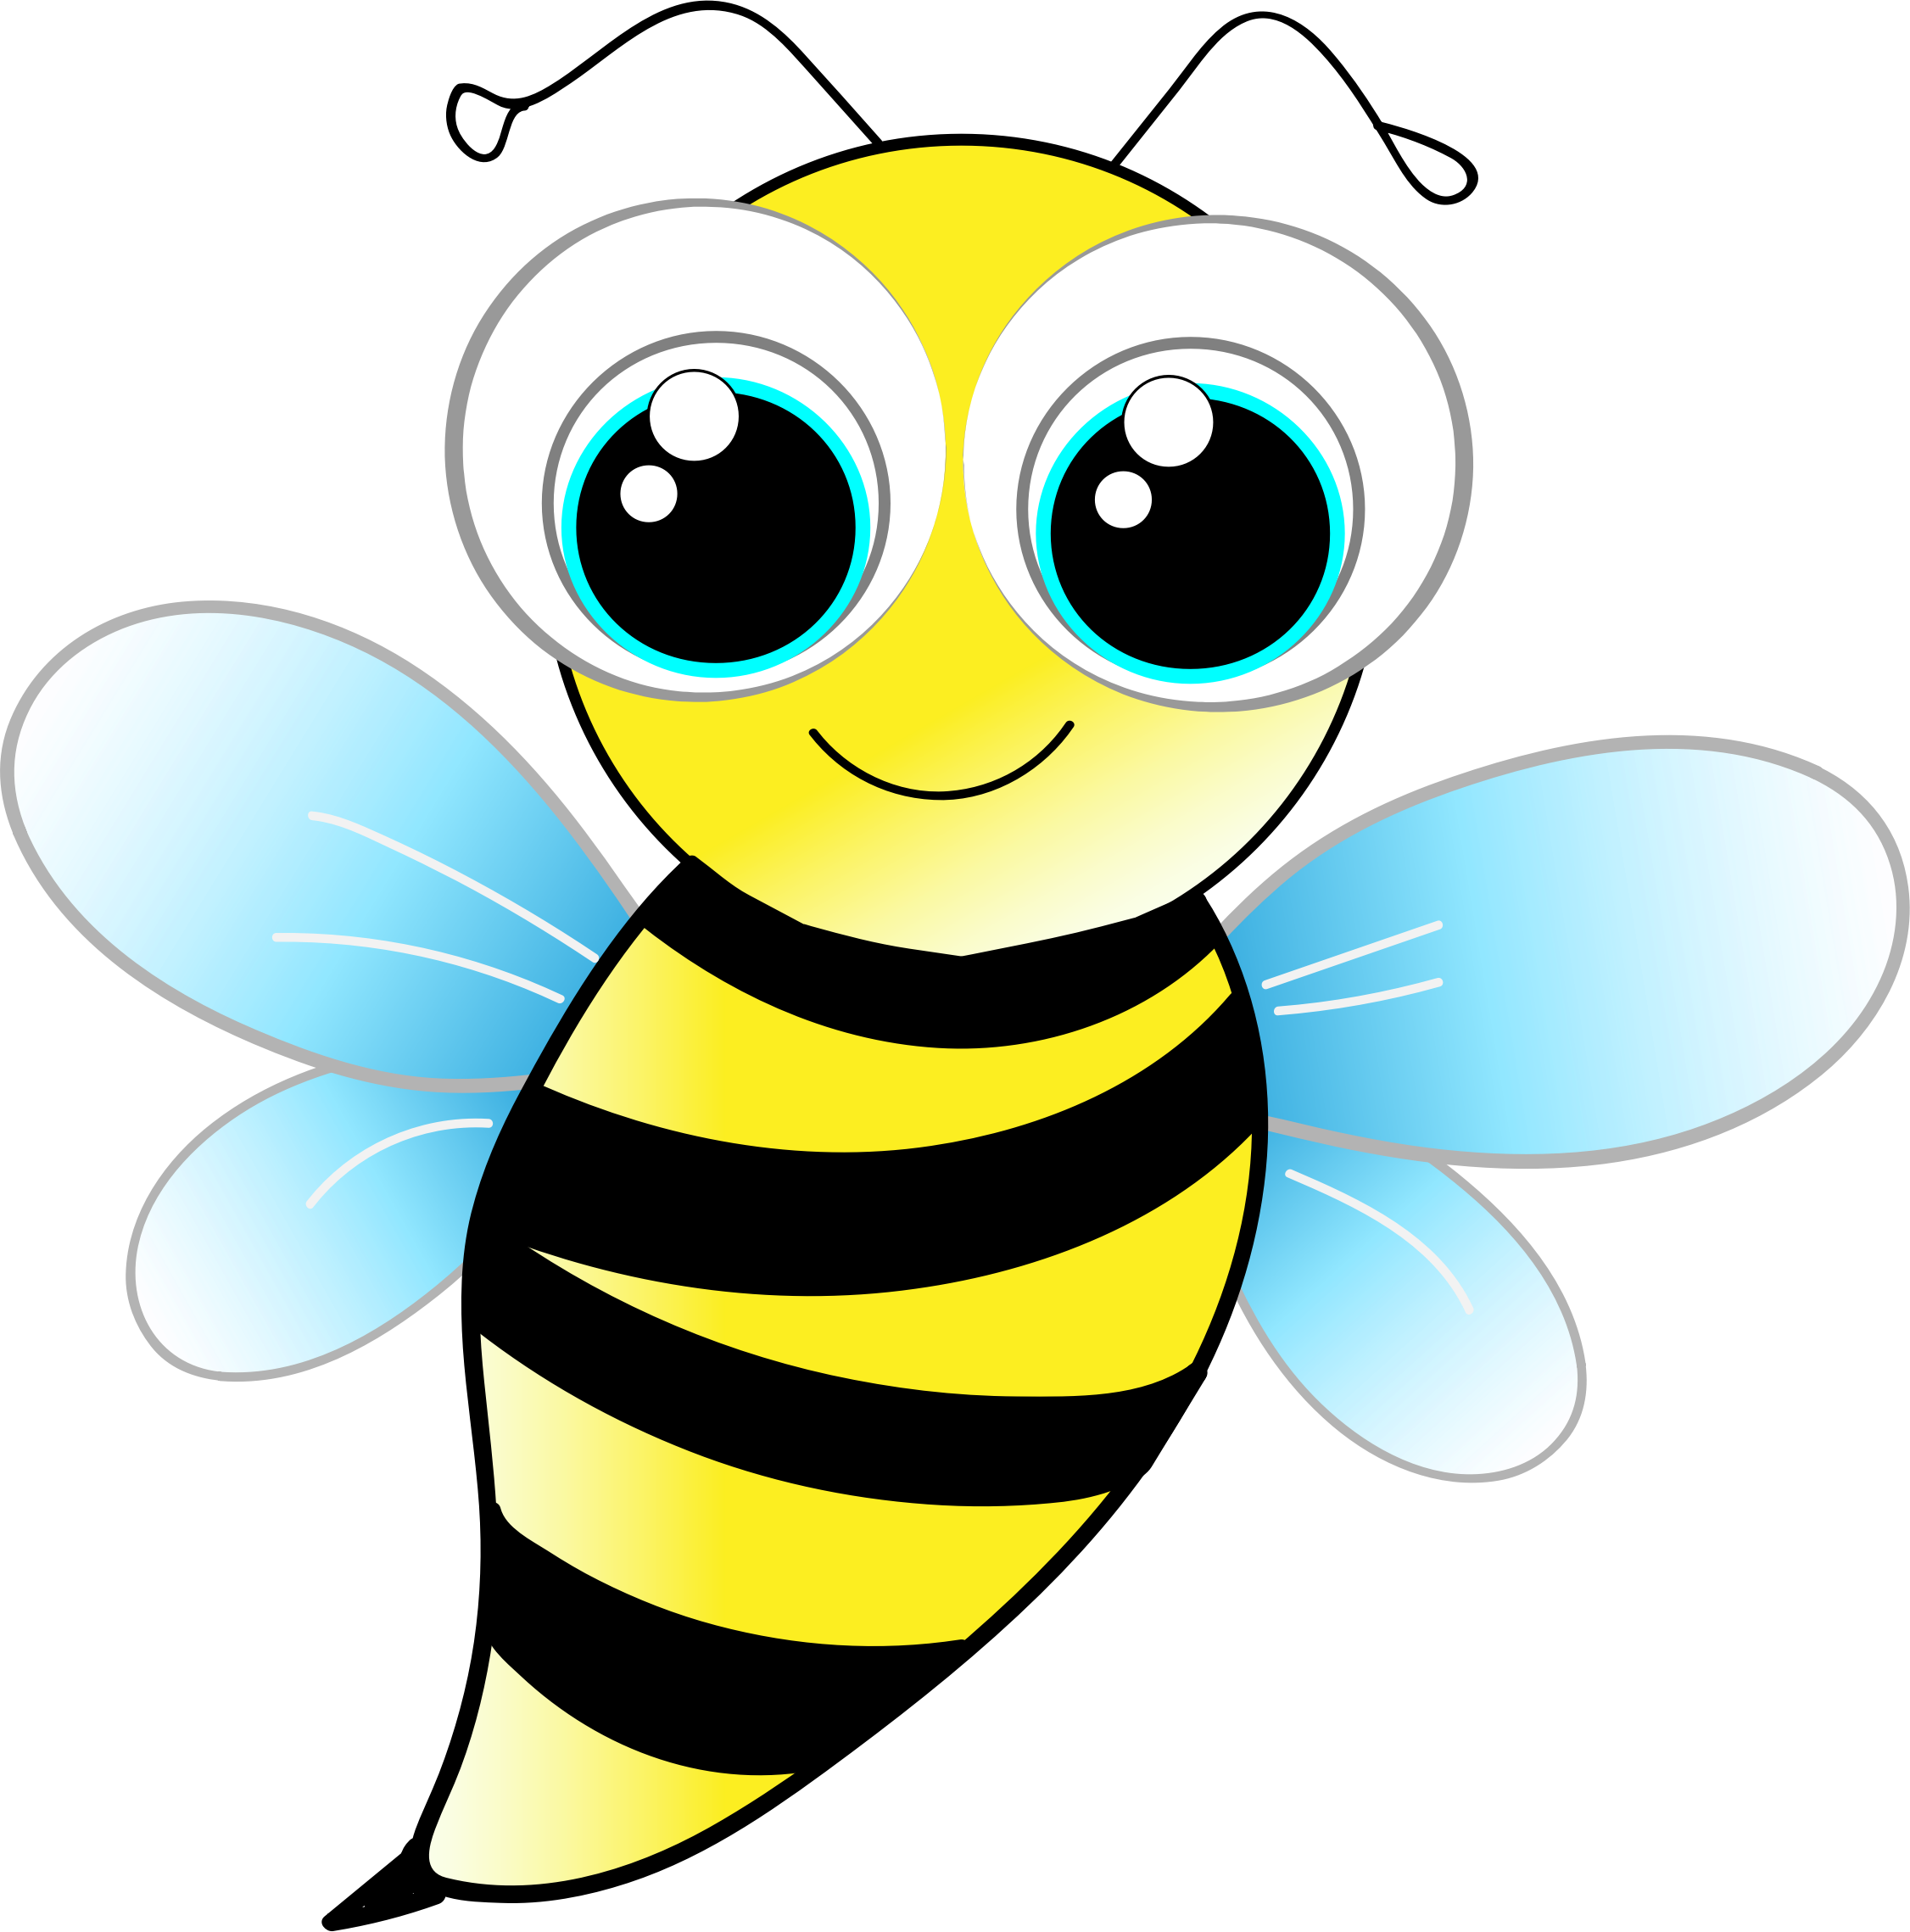 Big clipart friendly. Bee image png